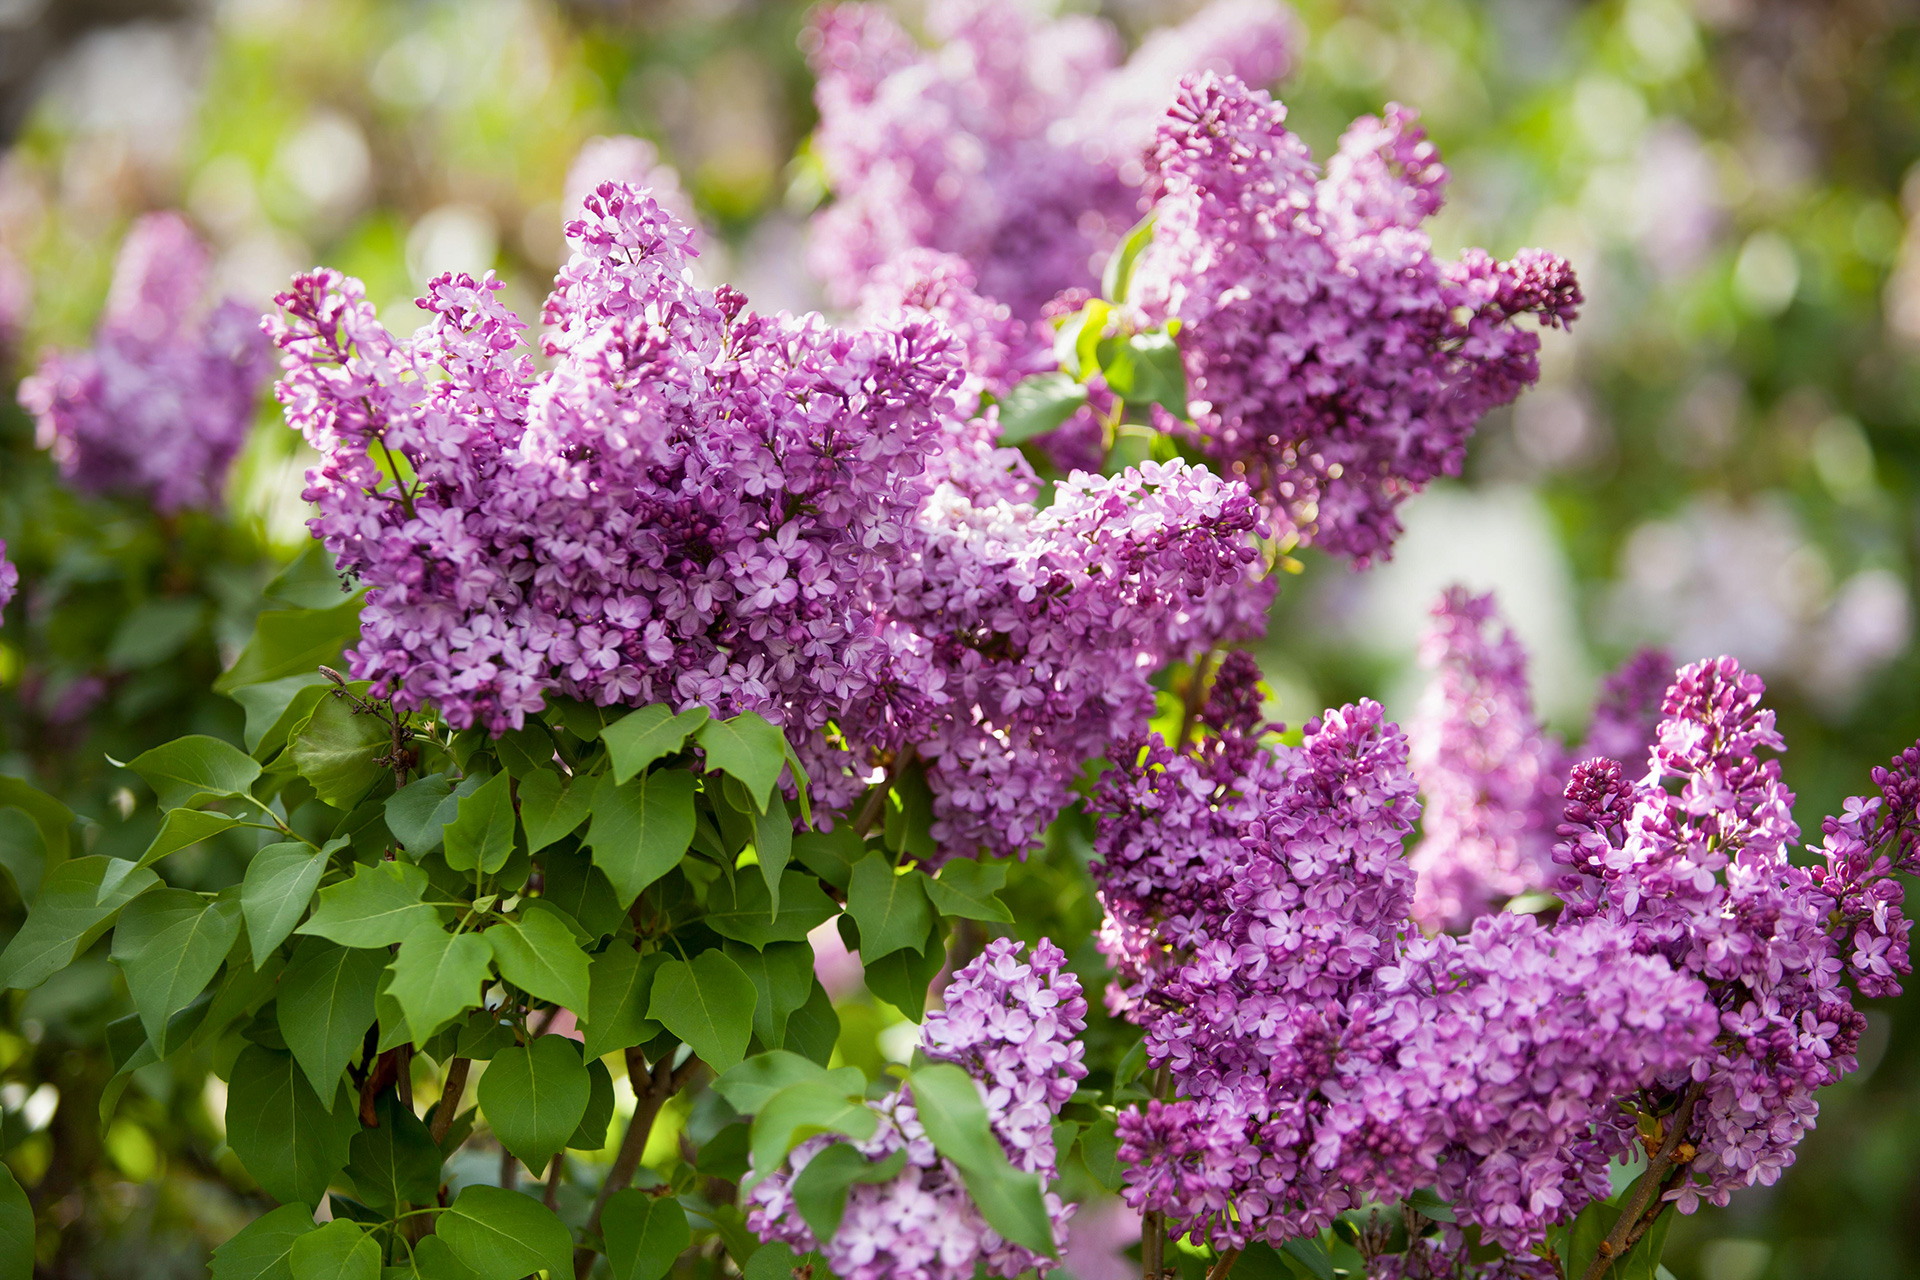 close up of purple lilacs blooming